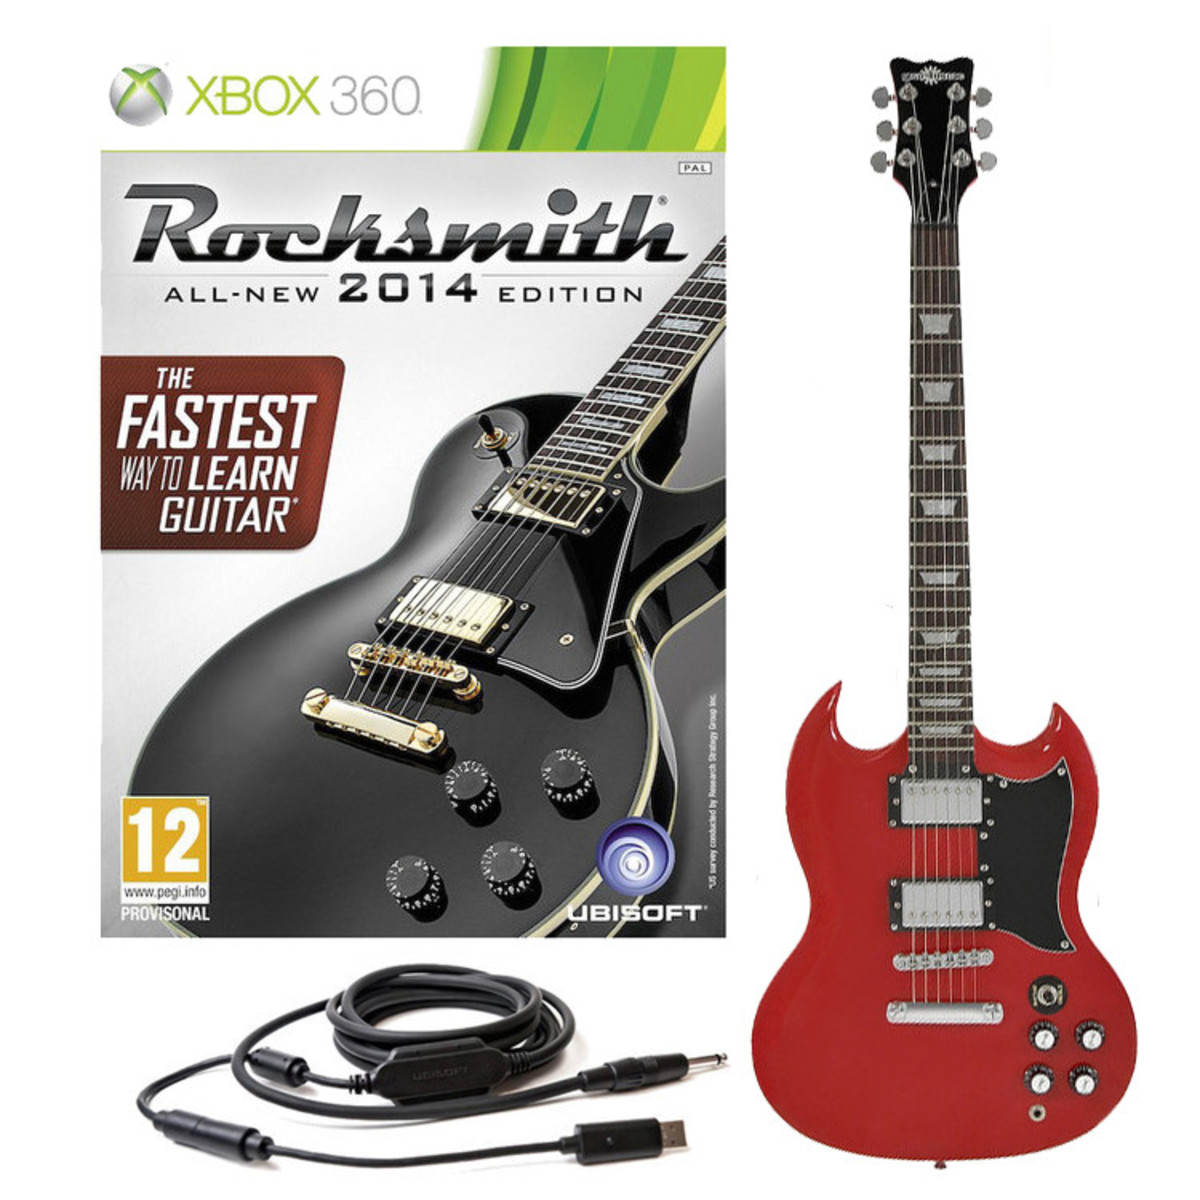 disc rocksmith 2014 xbox 360 brooklyn electric guitar red at. Black Bedroom Furniture Sets. Home Design Ideas